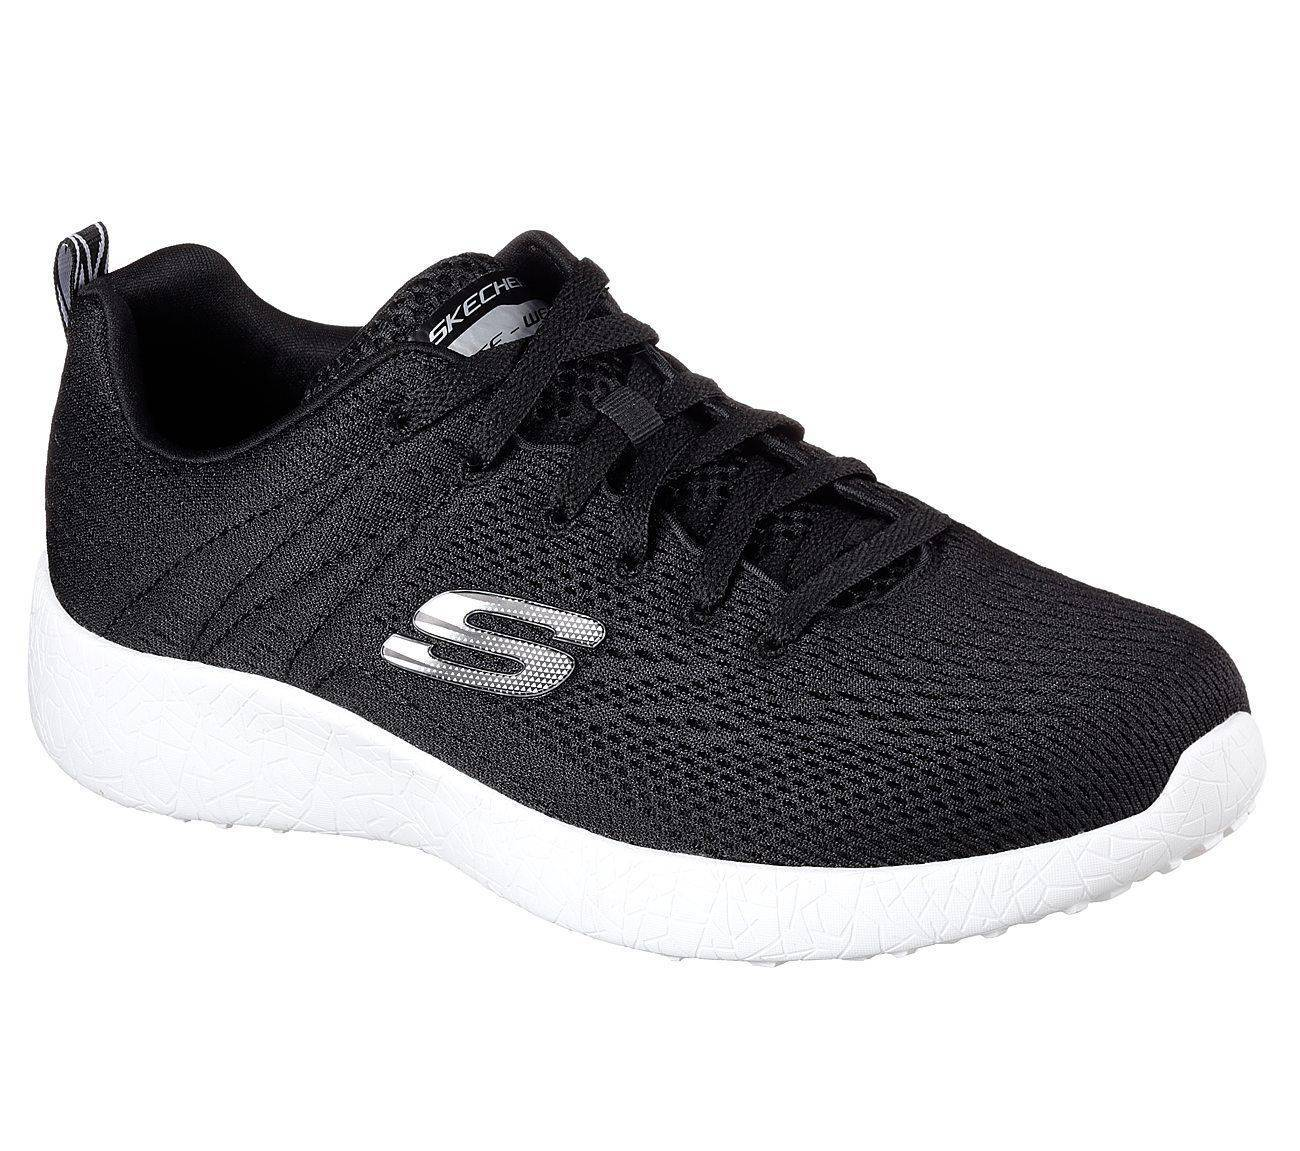 Skechers Mens Black and White Energy Burst Training Shoes -8